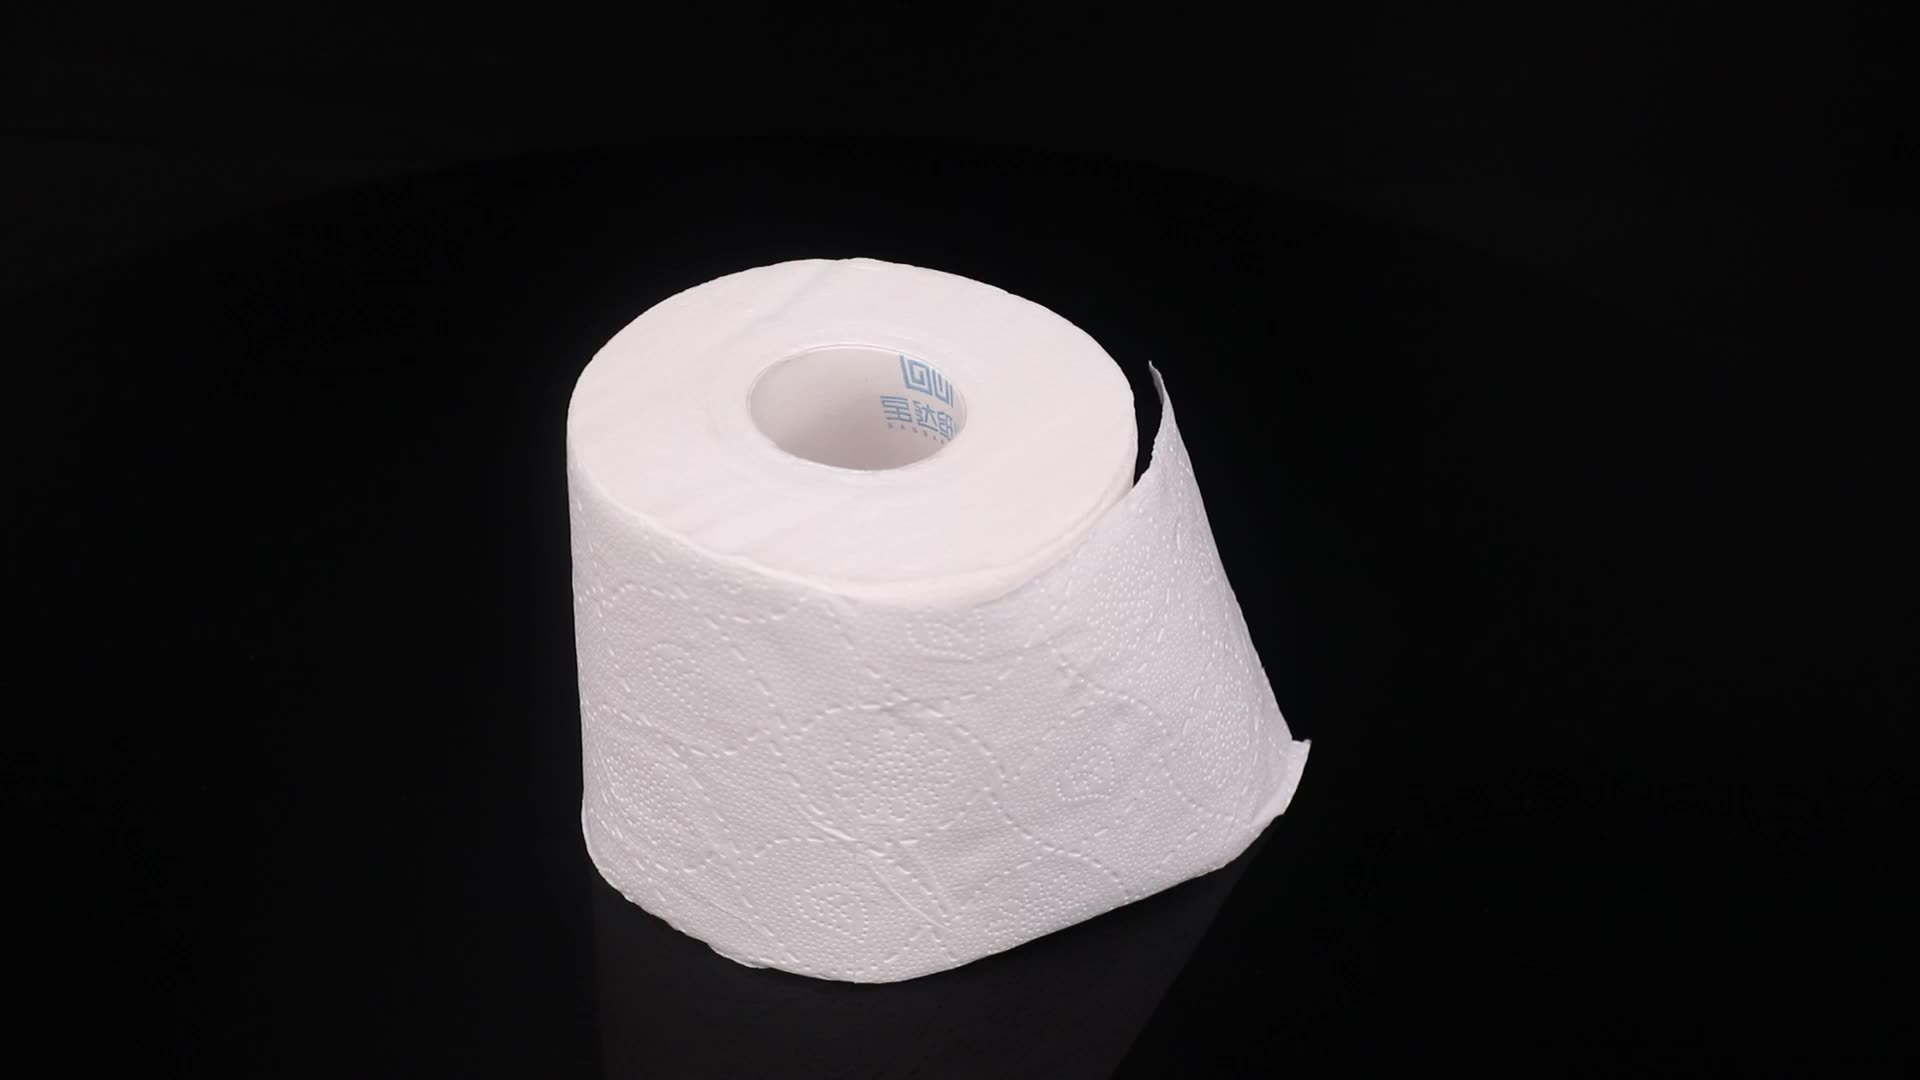 dissolvable toilet paper roll  toalet paper hygiene toilet tissue with high quality from China